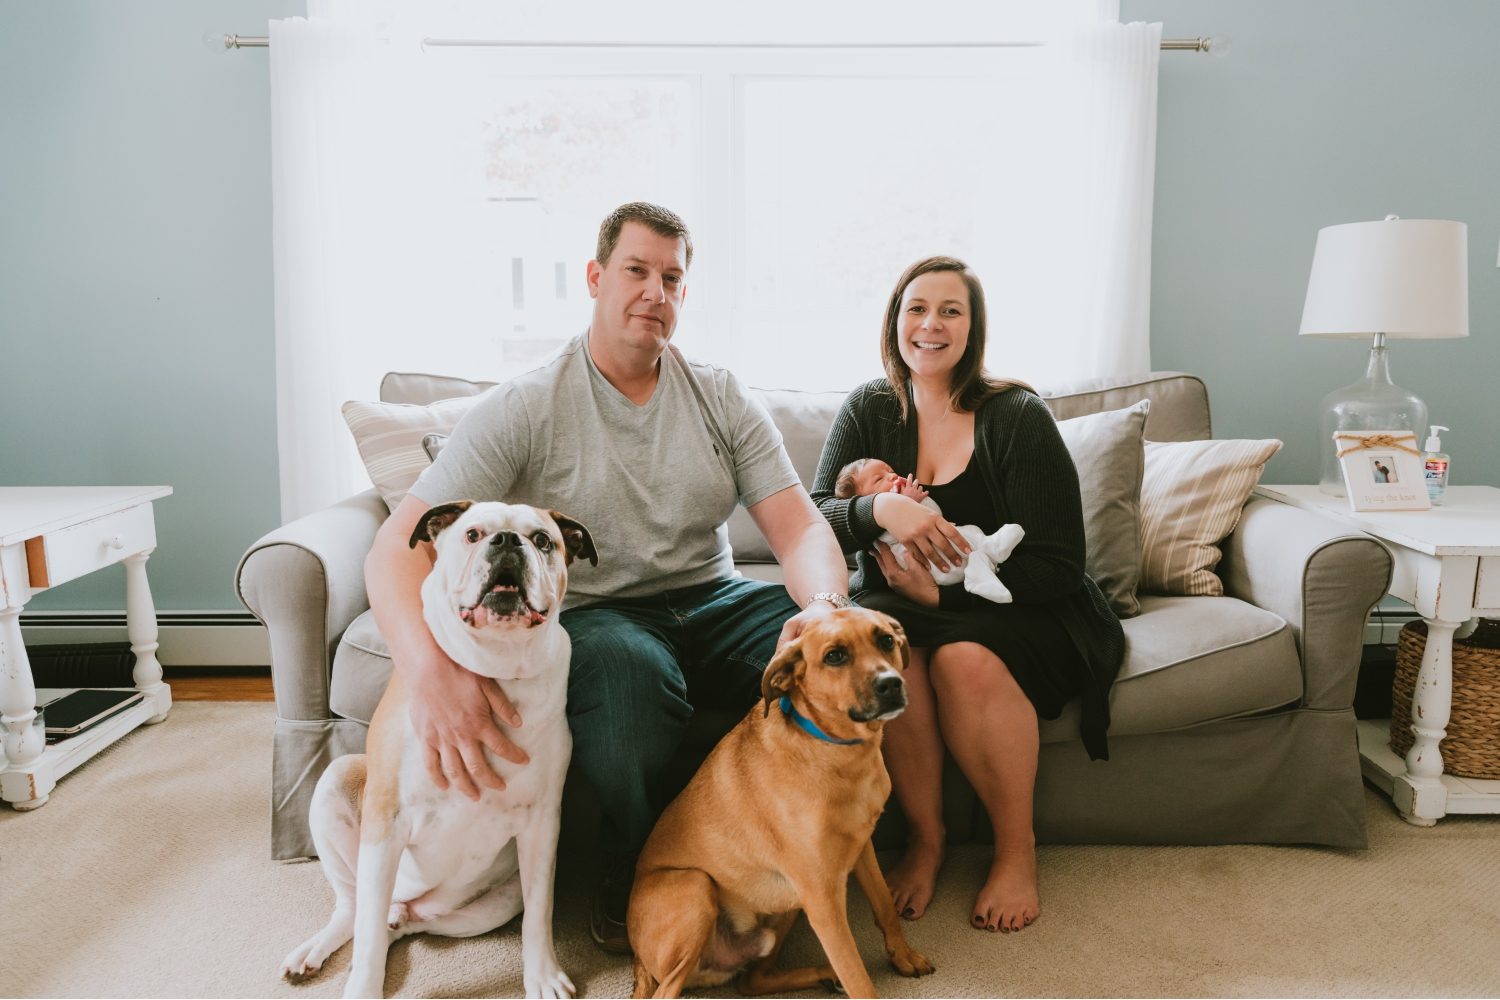 Picture-Of-Family-With-Dogs-And-Newborn-On-Couch-During-Newborn-Photography-Session-Ocean-County-New-Jersey